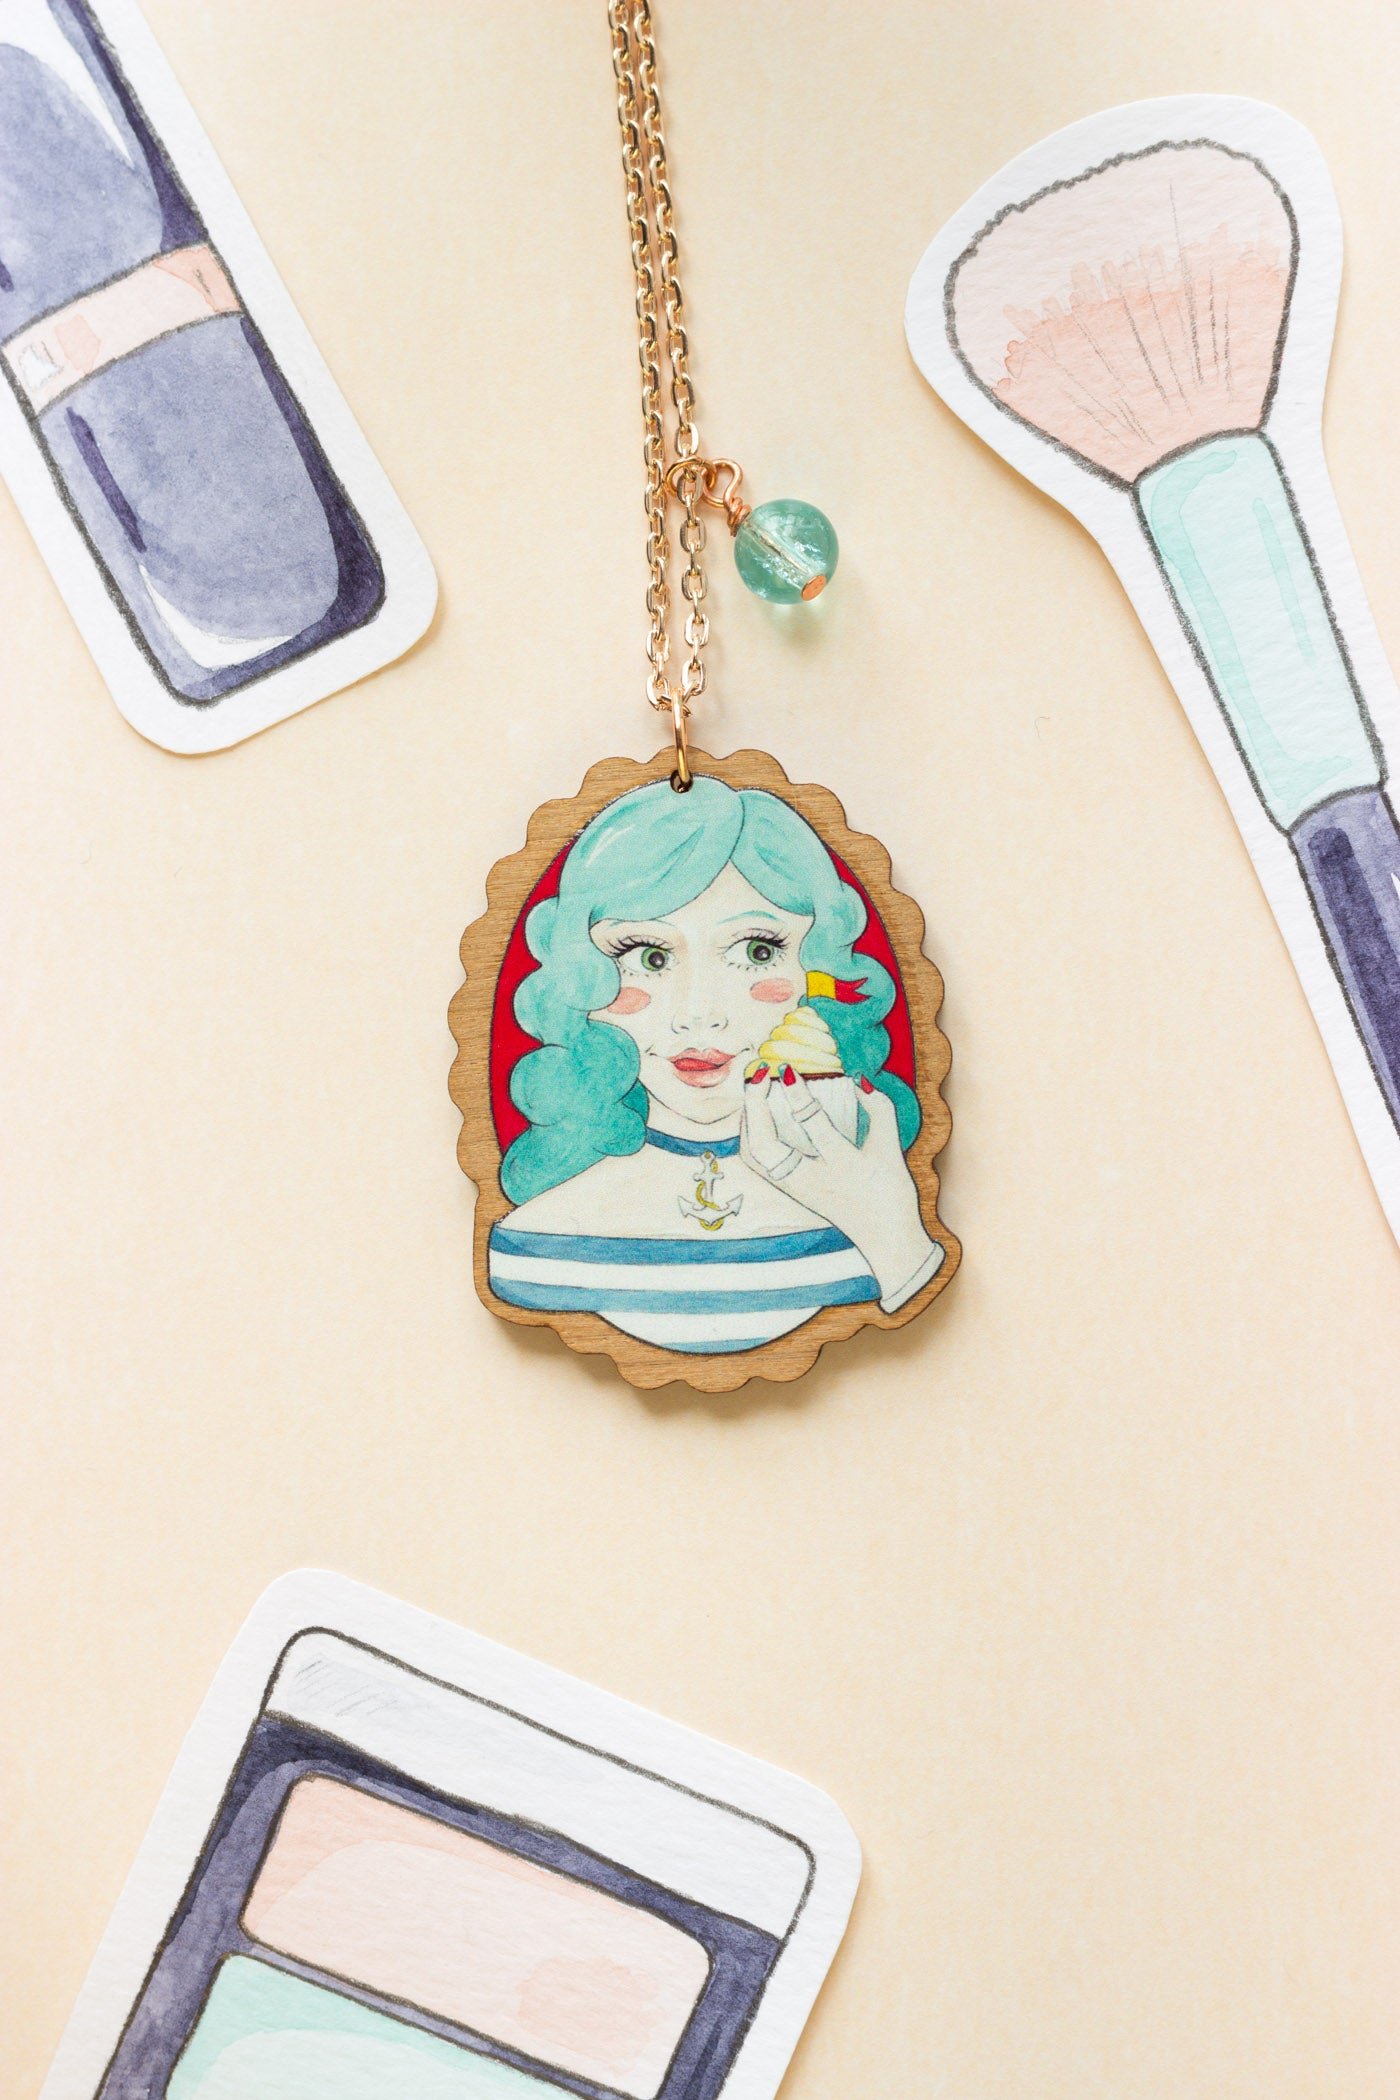 Blue-Haired Nautical Meredith with a Cupcake Rose Gold & Wood Pendant Necklace